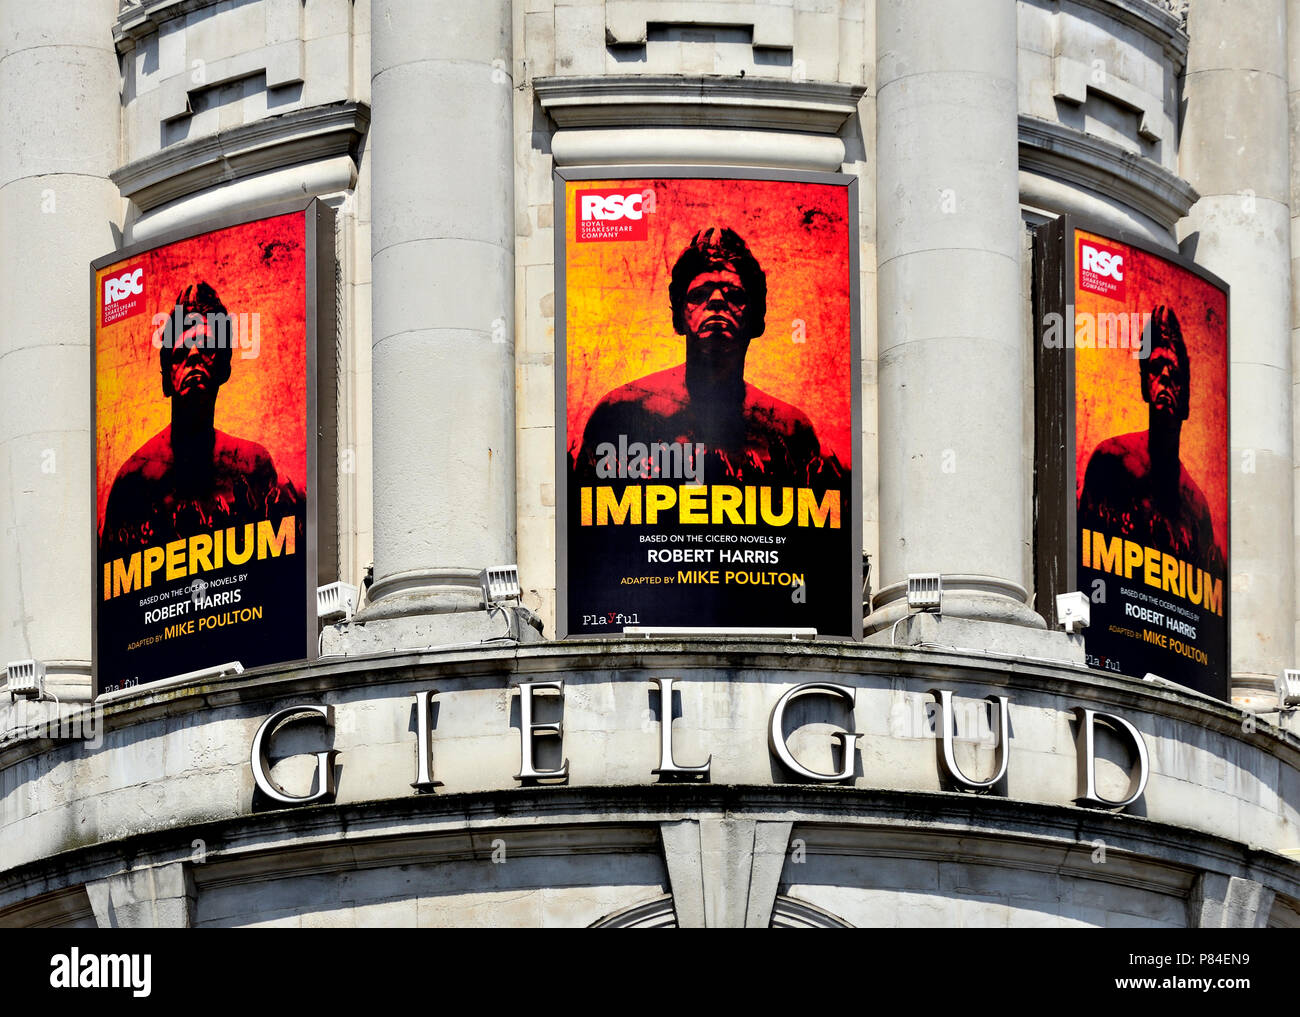 'Imperium' (by Mike Poulton) at the Gielgud Theatre, Shatesbury Avenue (July 2018) London, England, UK. - Stock Image